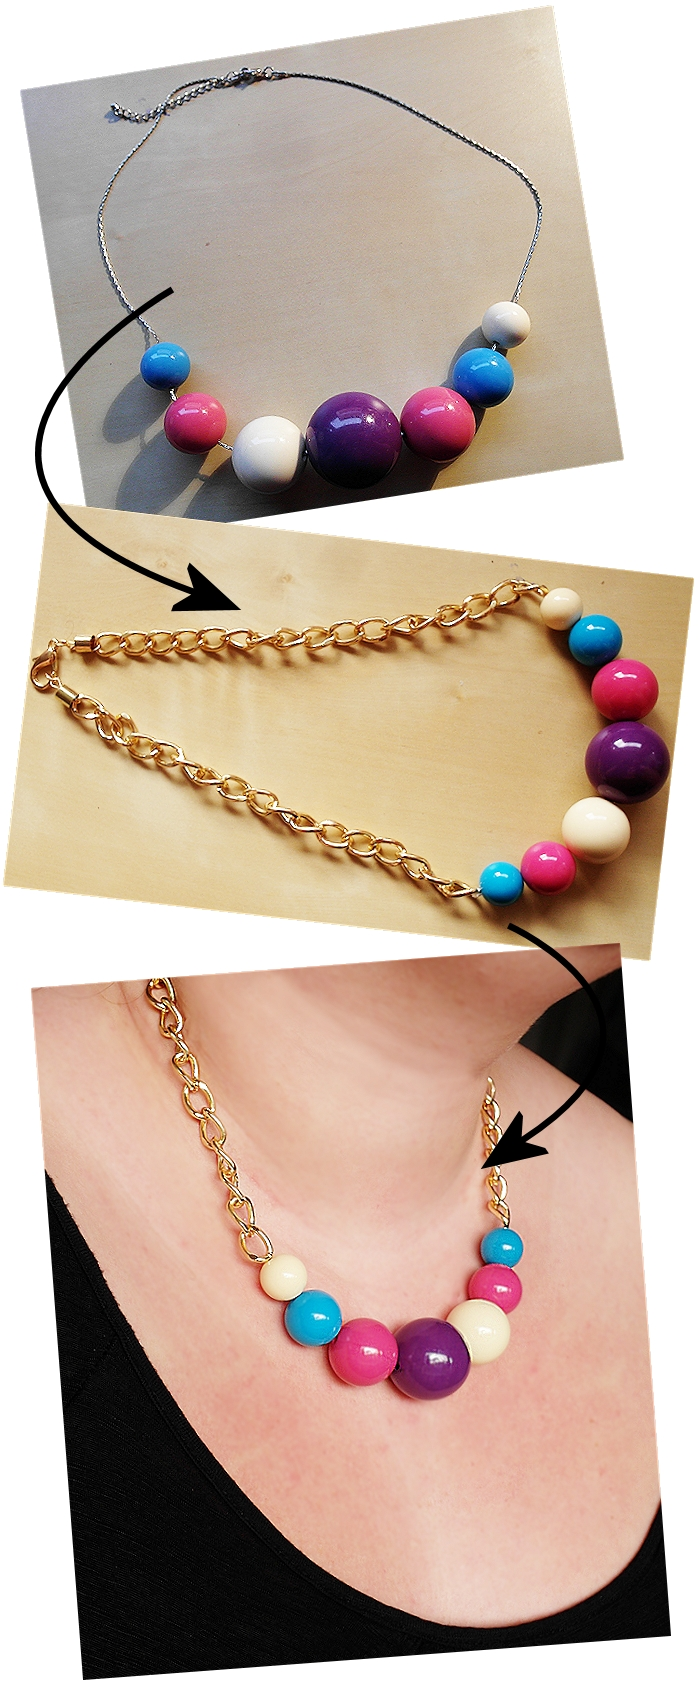 Große Größen Plus Size Fashion Blog DIY necklaces